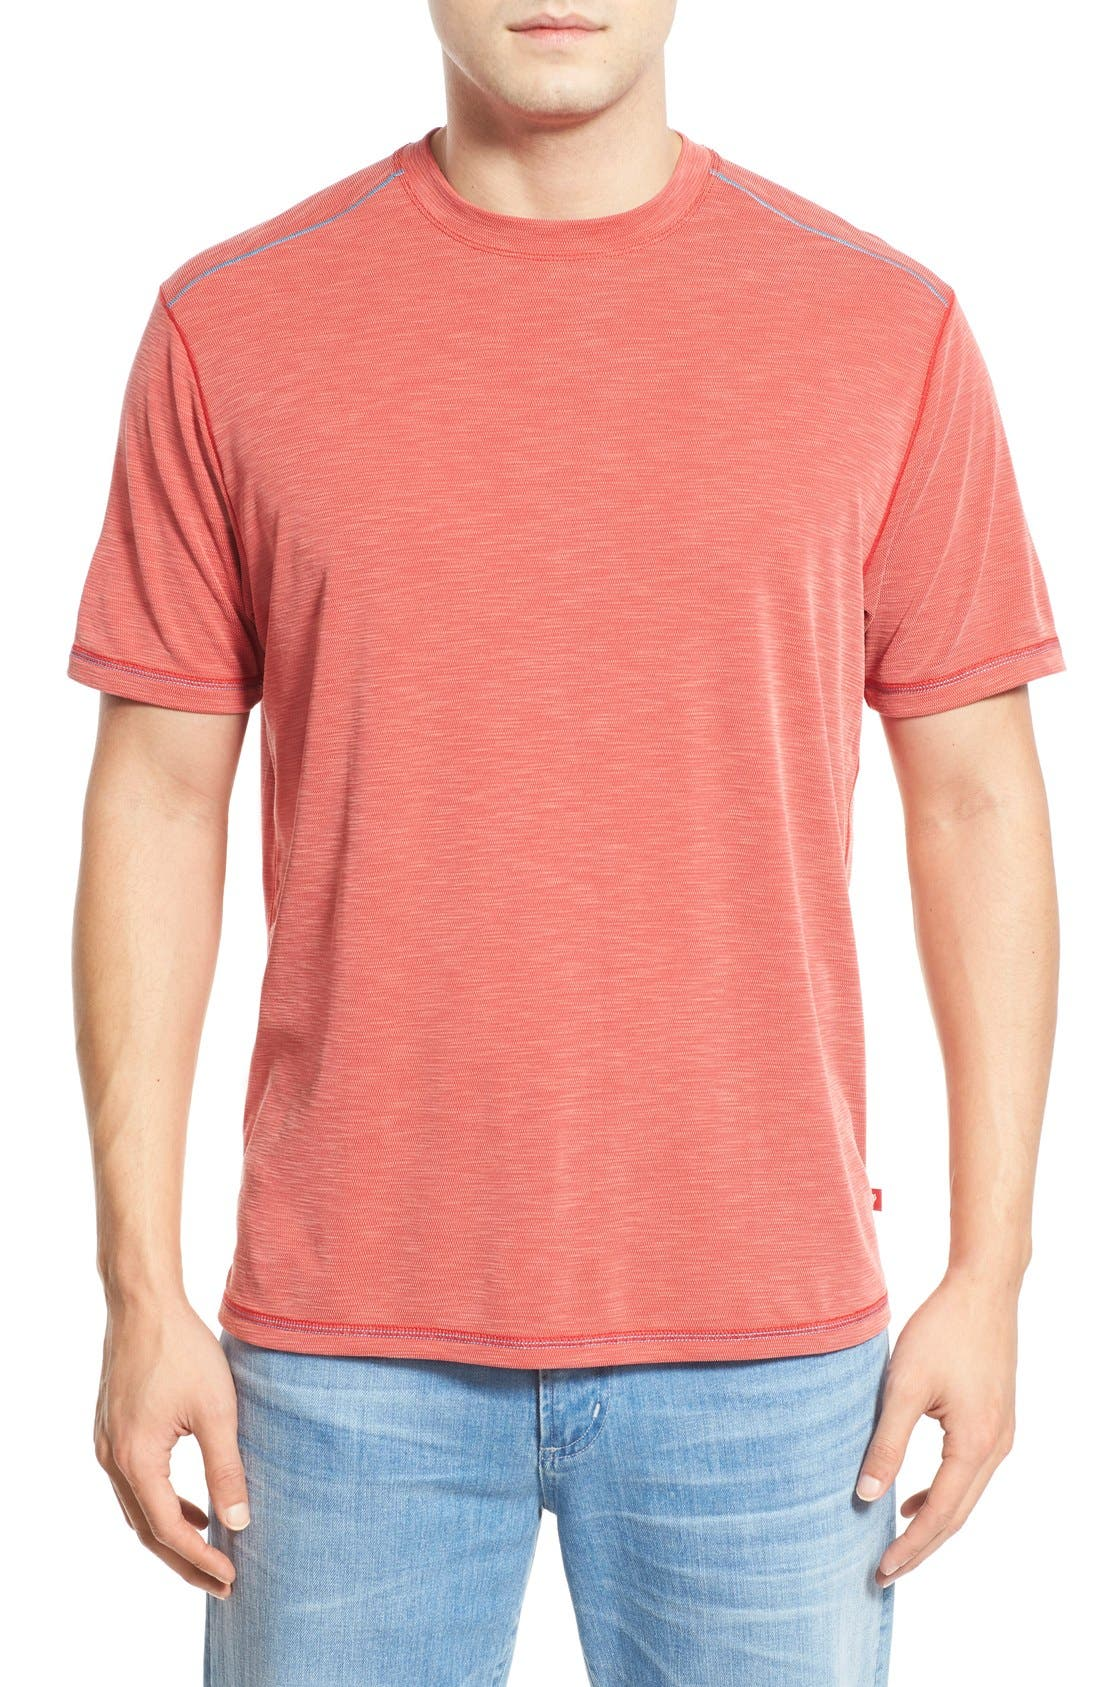 Tommy Bahama 'Paradise Around' Crewneck T-Shirt